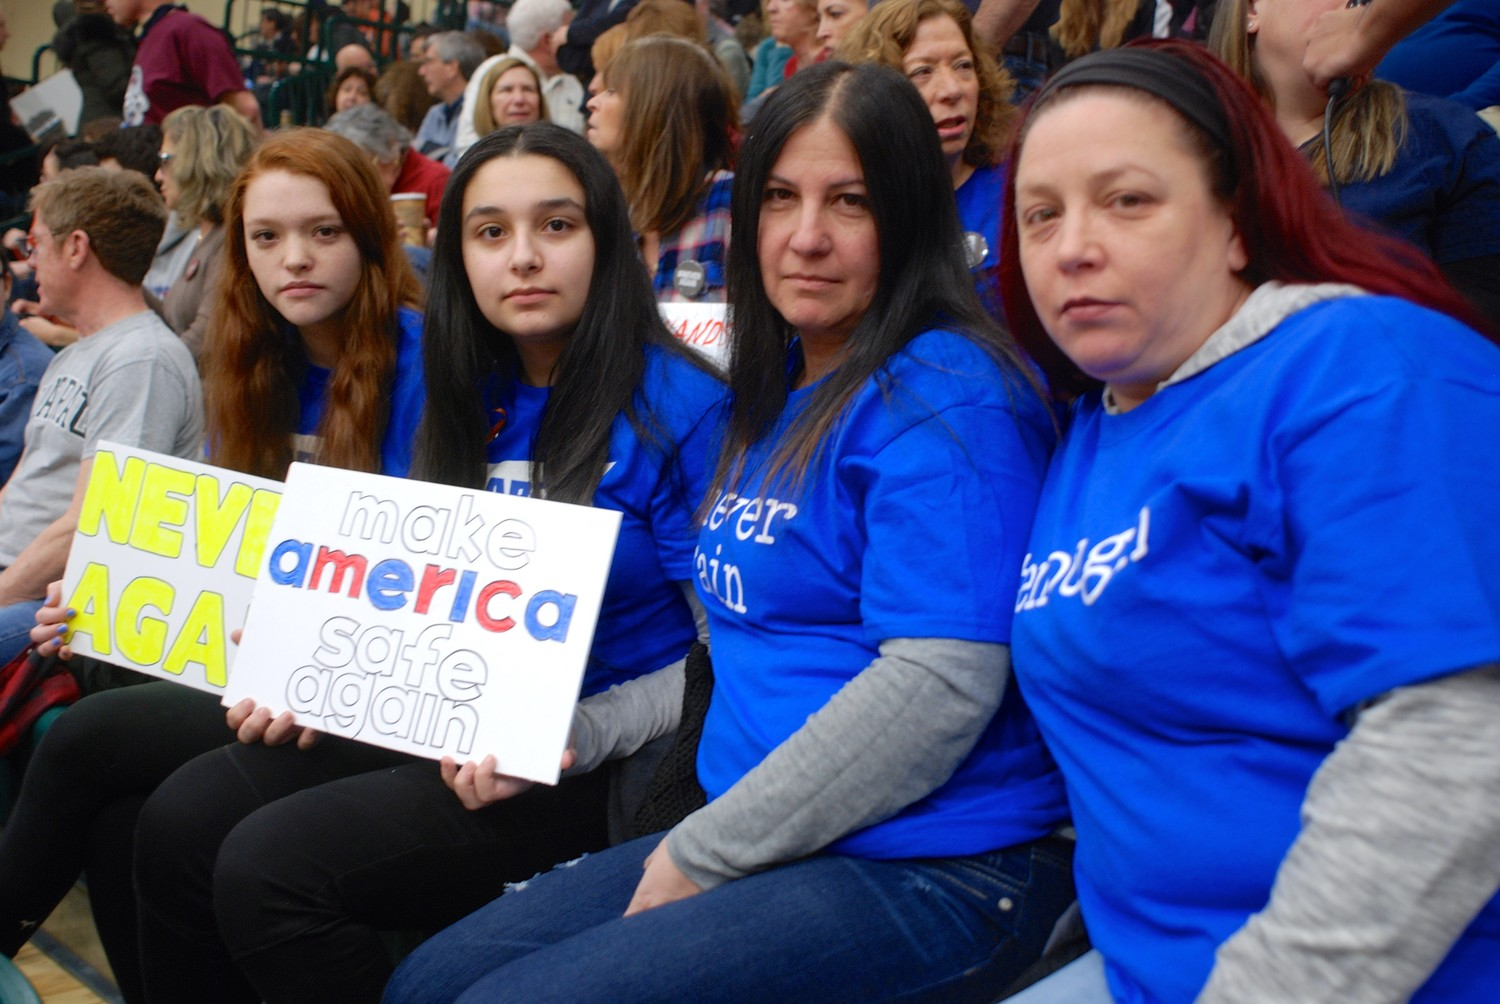 From left were Mackenzie Gentilesco, a ninth-grader at Lindenhurst High School; her friend Gianna Pfeiffer, a ninth-grader at H. Carey High School in Franklin Square; and their mothers, Camile Pfeiffer and Lisa Gentilesco.